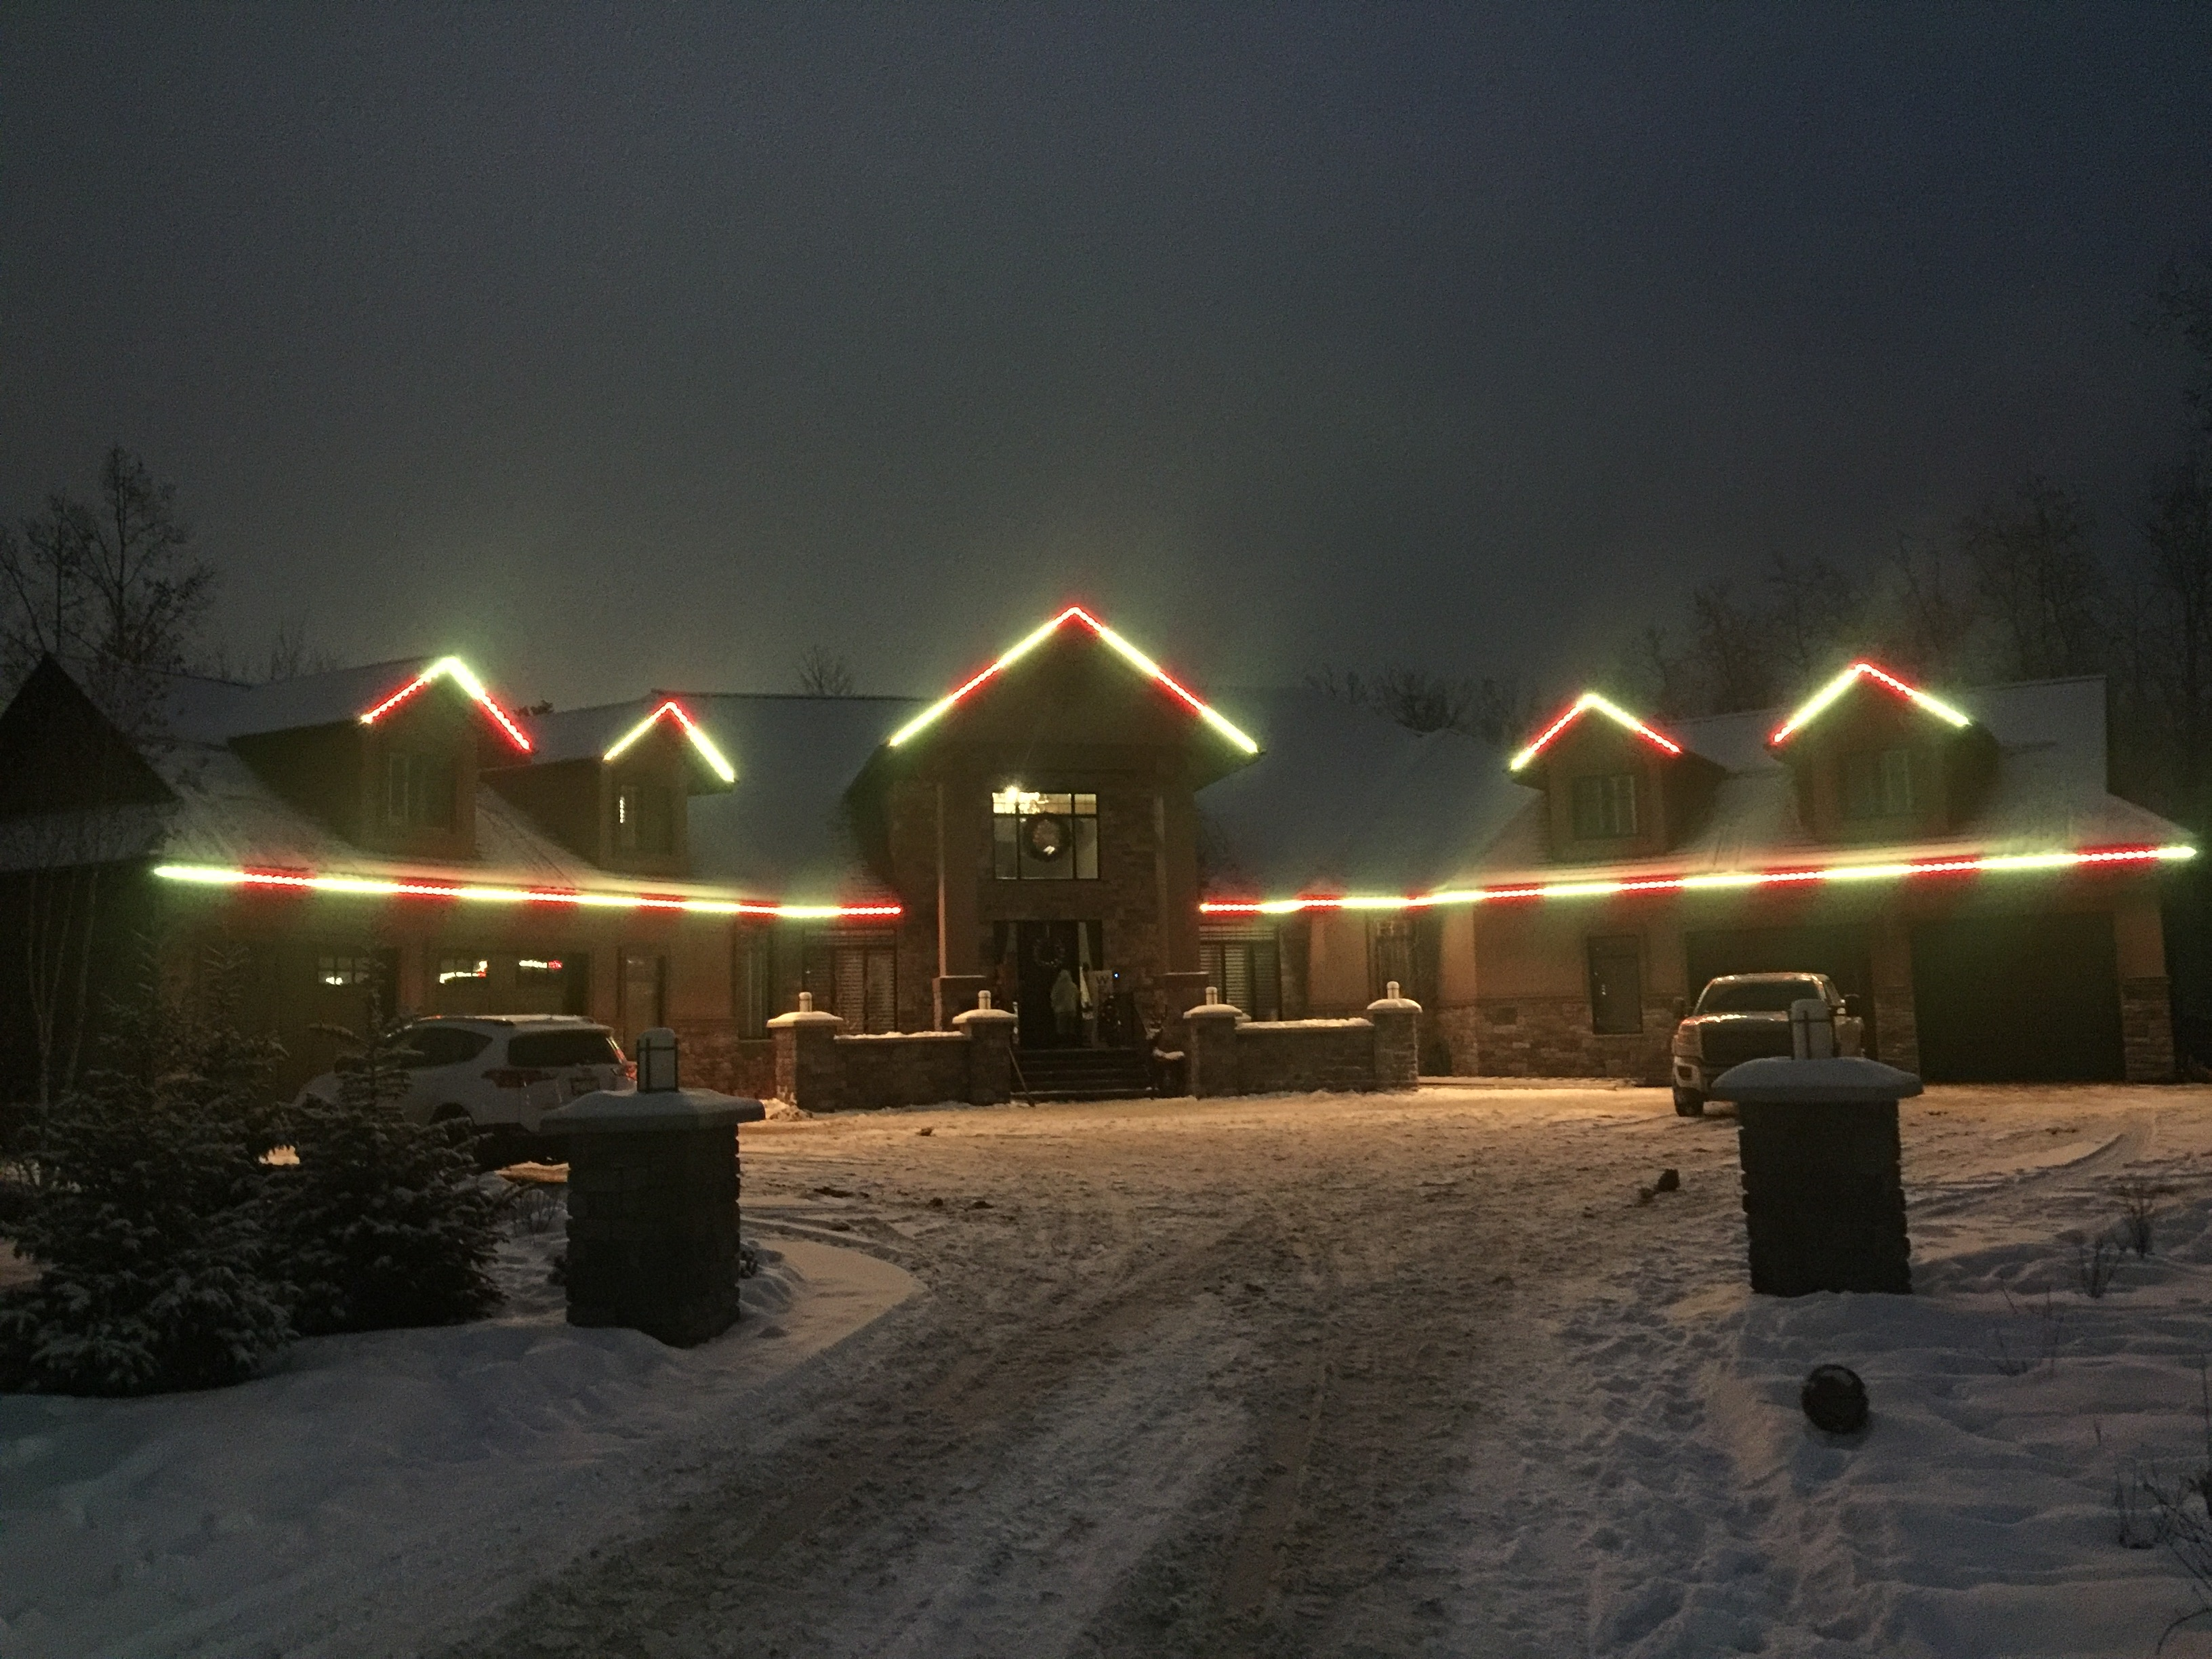 By Using Leds For Their Fancy Christmas Lighting, Toronto Homeowners Get The Best Of All Possible Worlds!